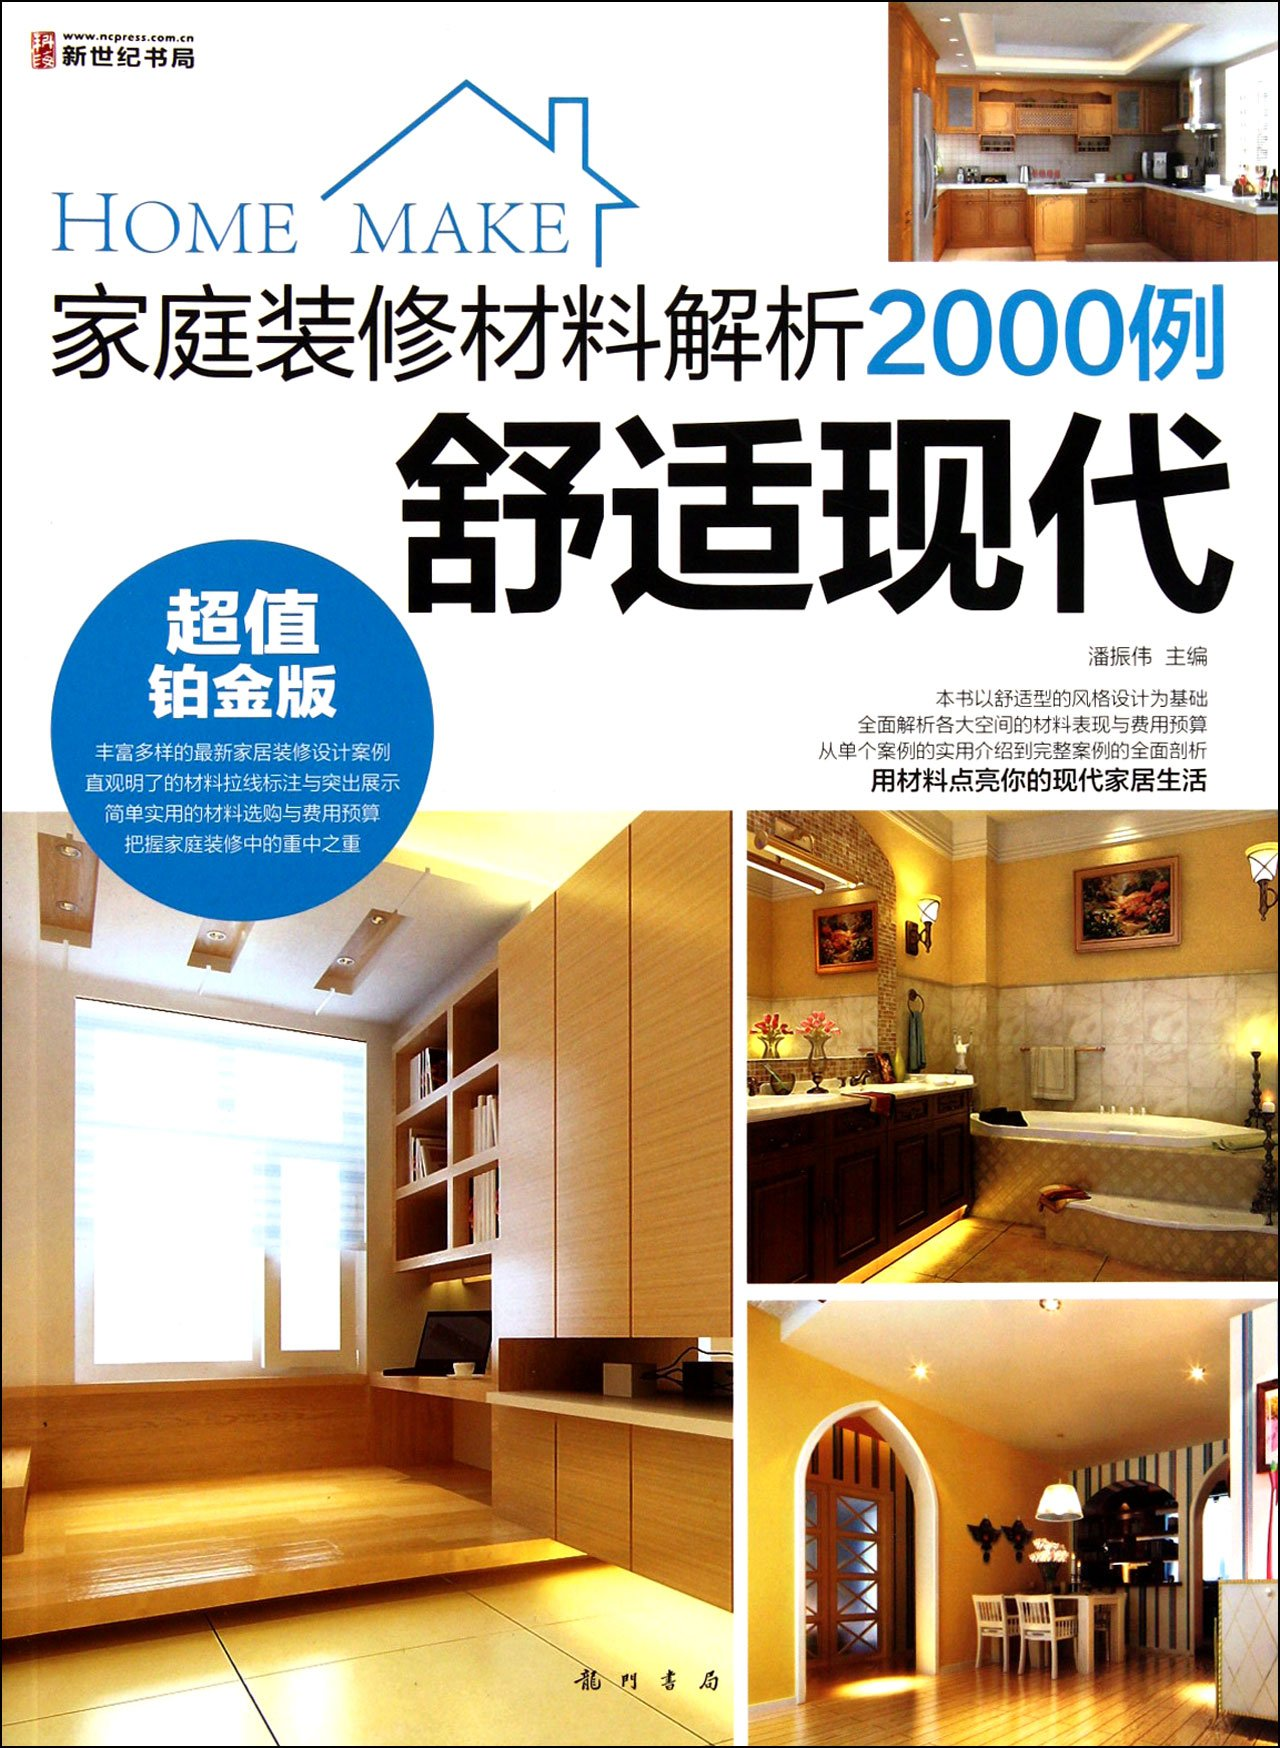 Read Online The Comfortable Modern Home Furnishing - 2000 Cases of Home Decoration Materials Analysis  - value platinum edition (Chinese Edition) ebook